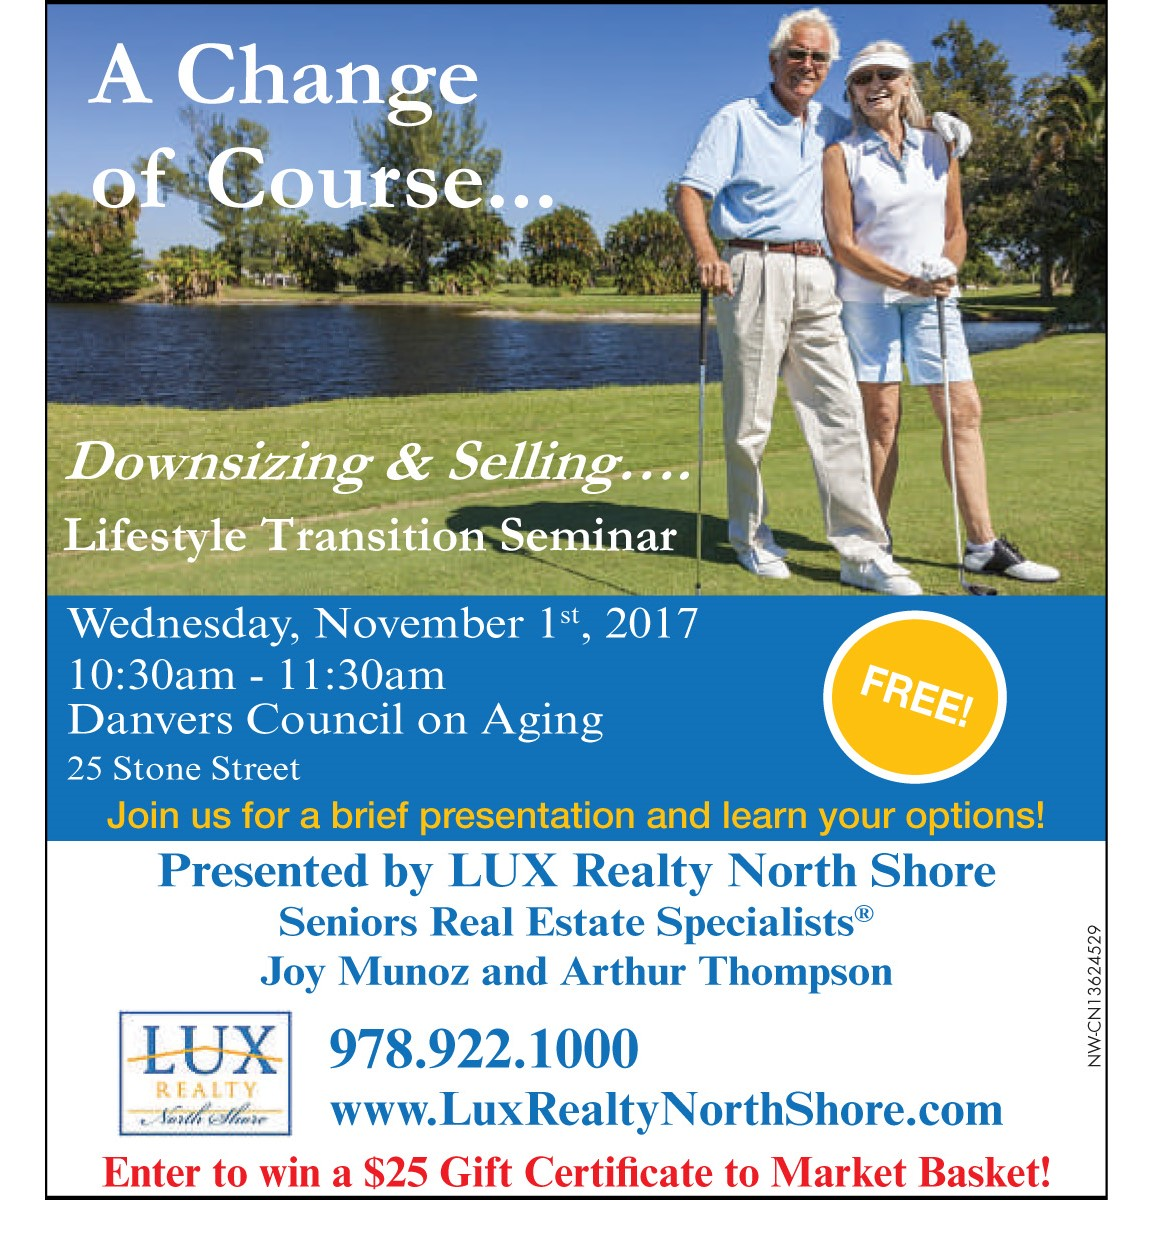 danvers council on aging lifestyle transition seminar